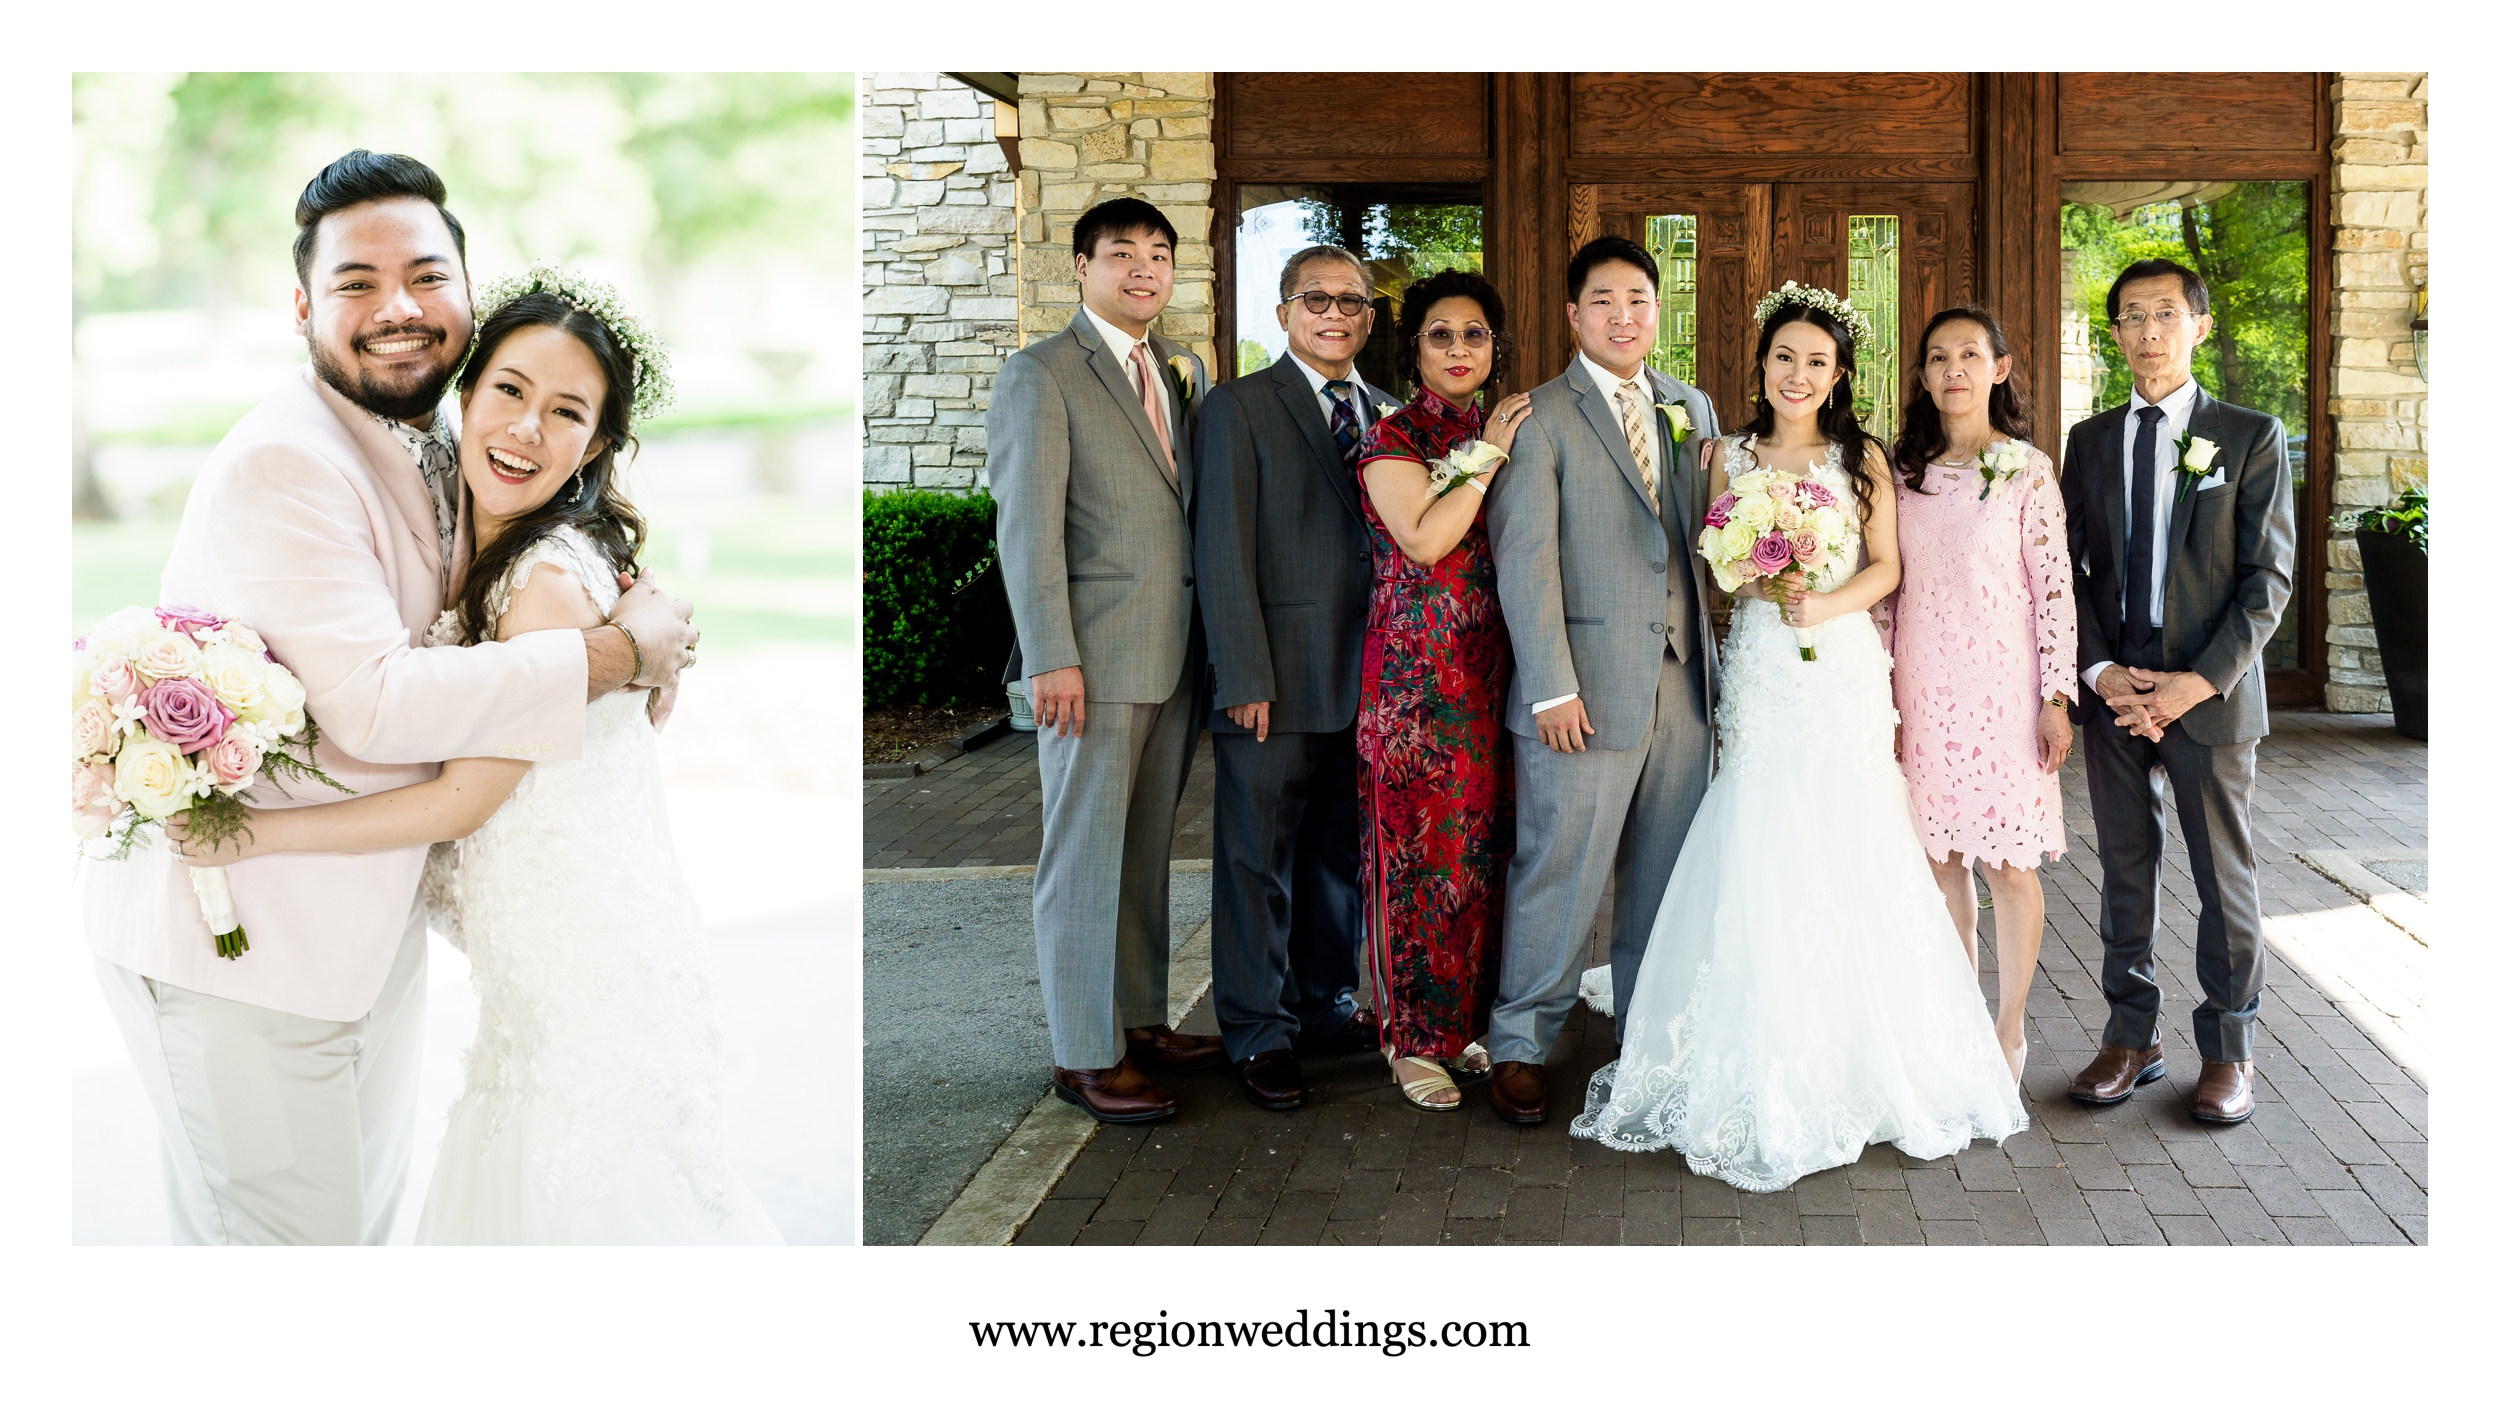 Family pictures at Briar Ridge Country Club.